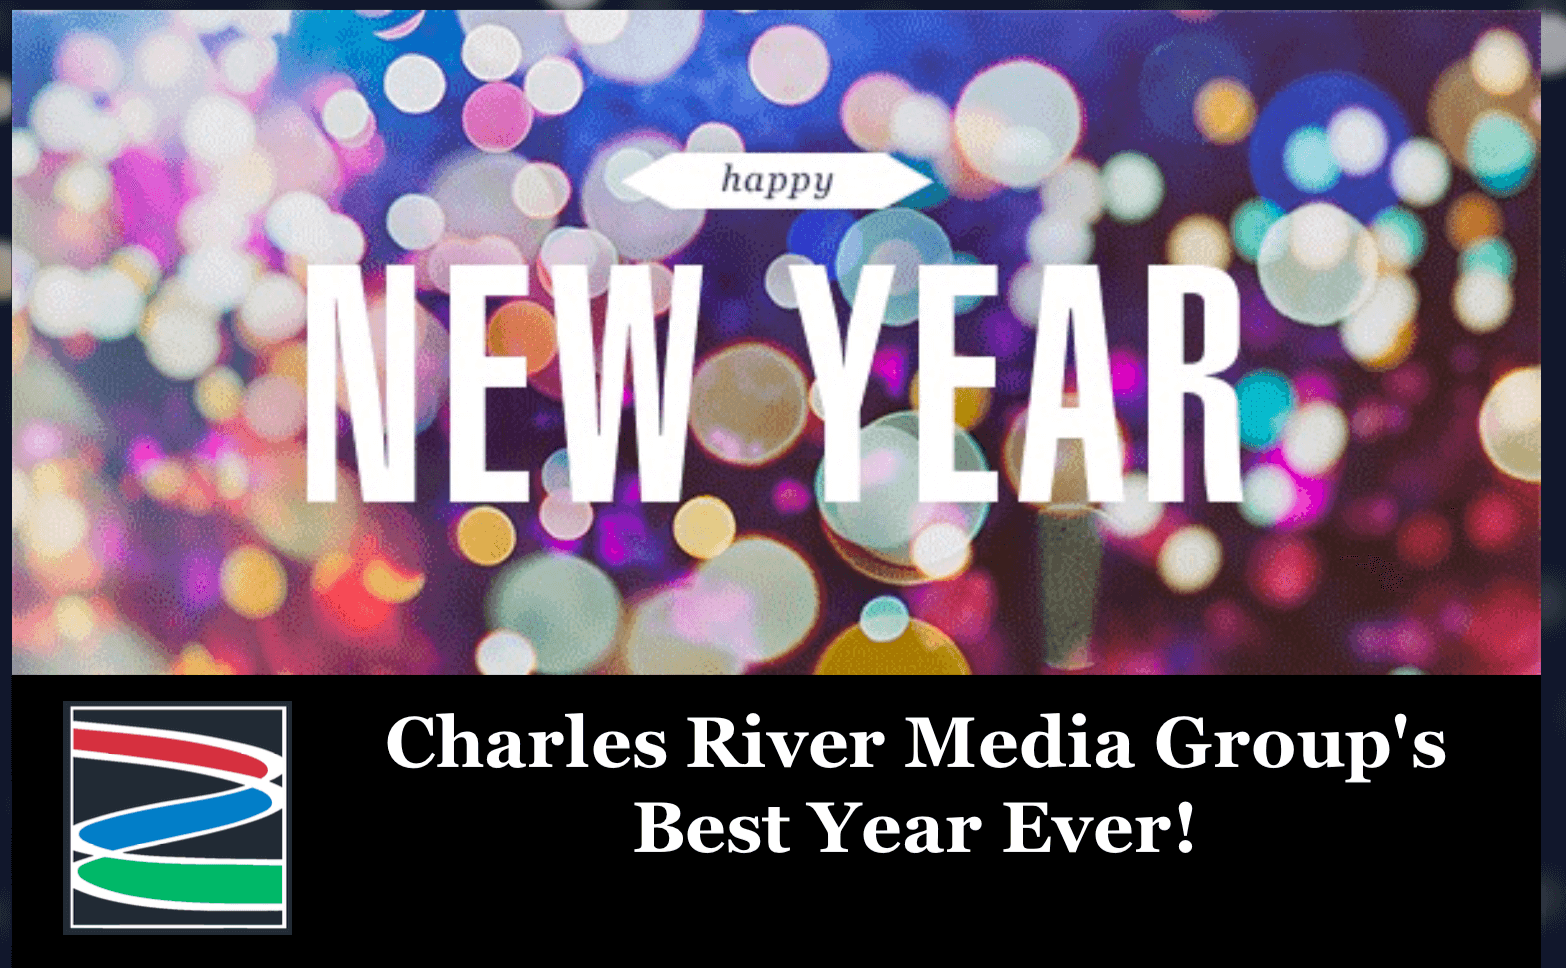 2018 Best Year Ever - Charles River Media Group